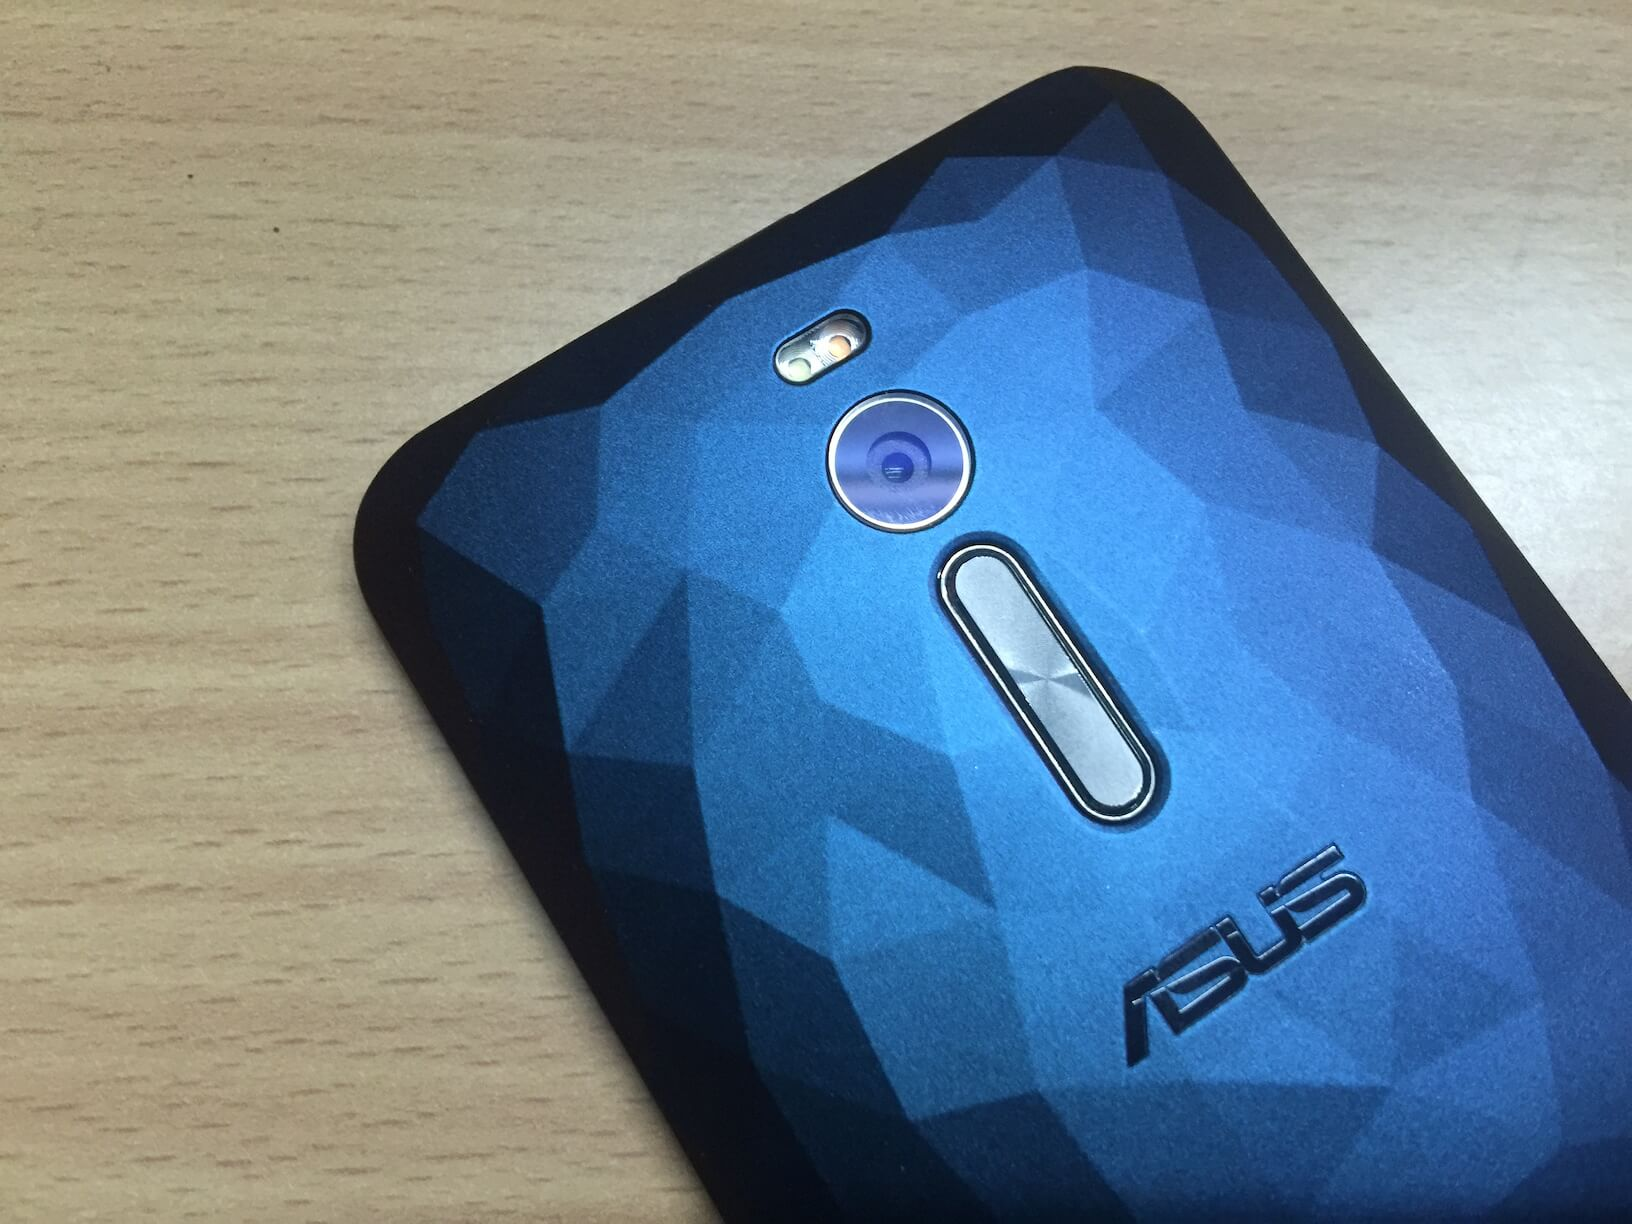 Asus Zenfone 2 Deluxe: Review